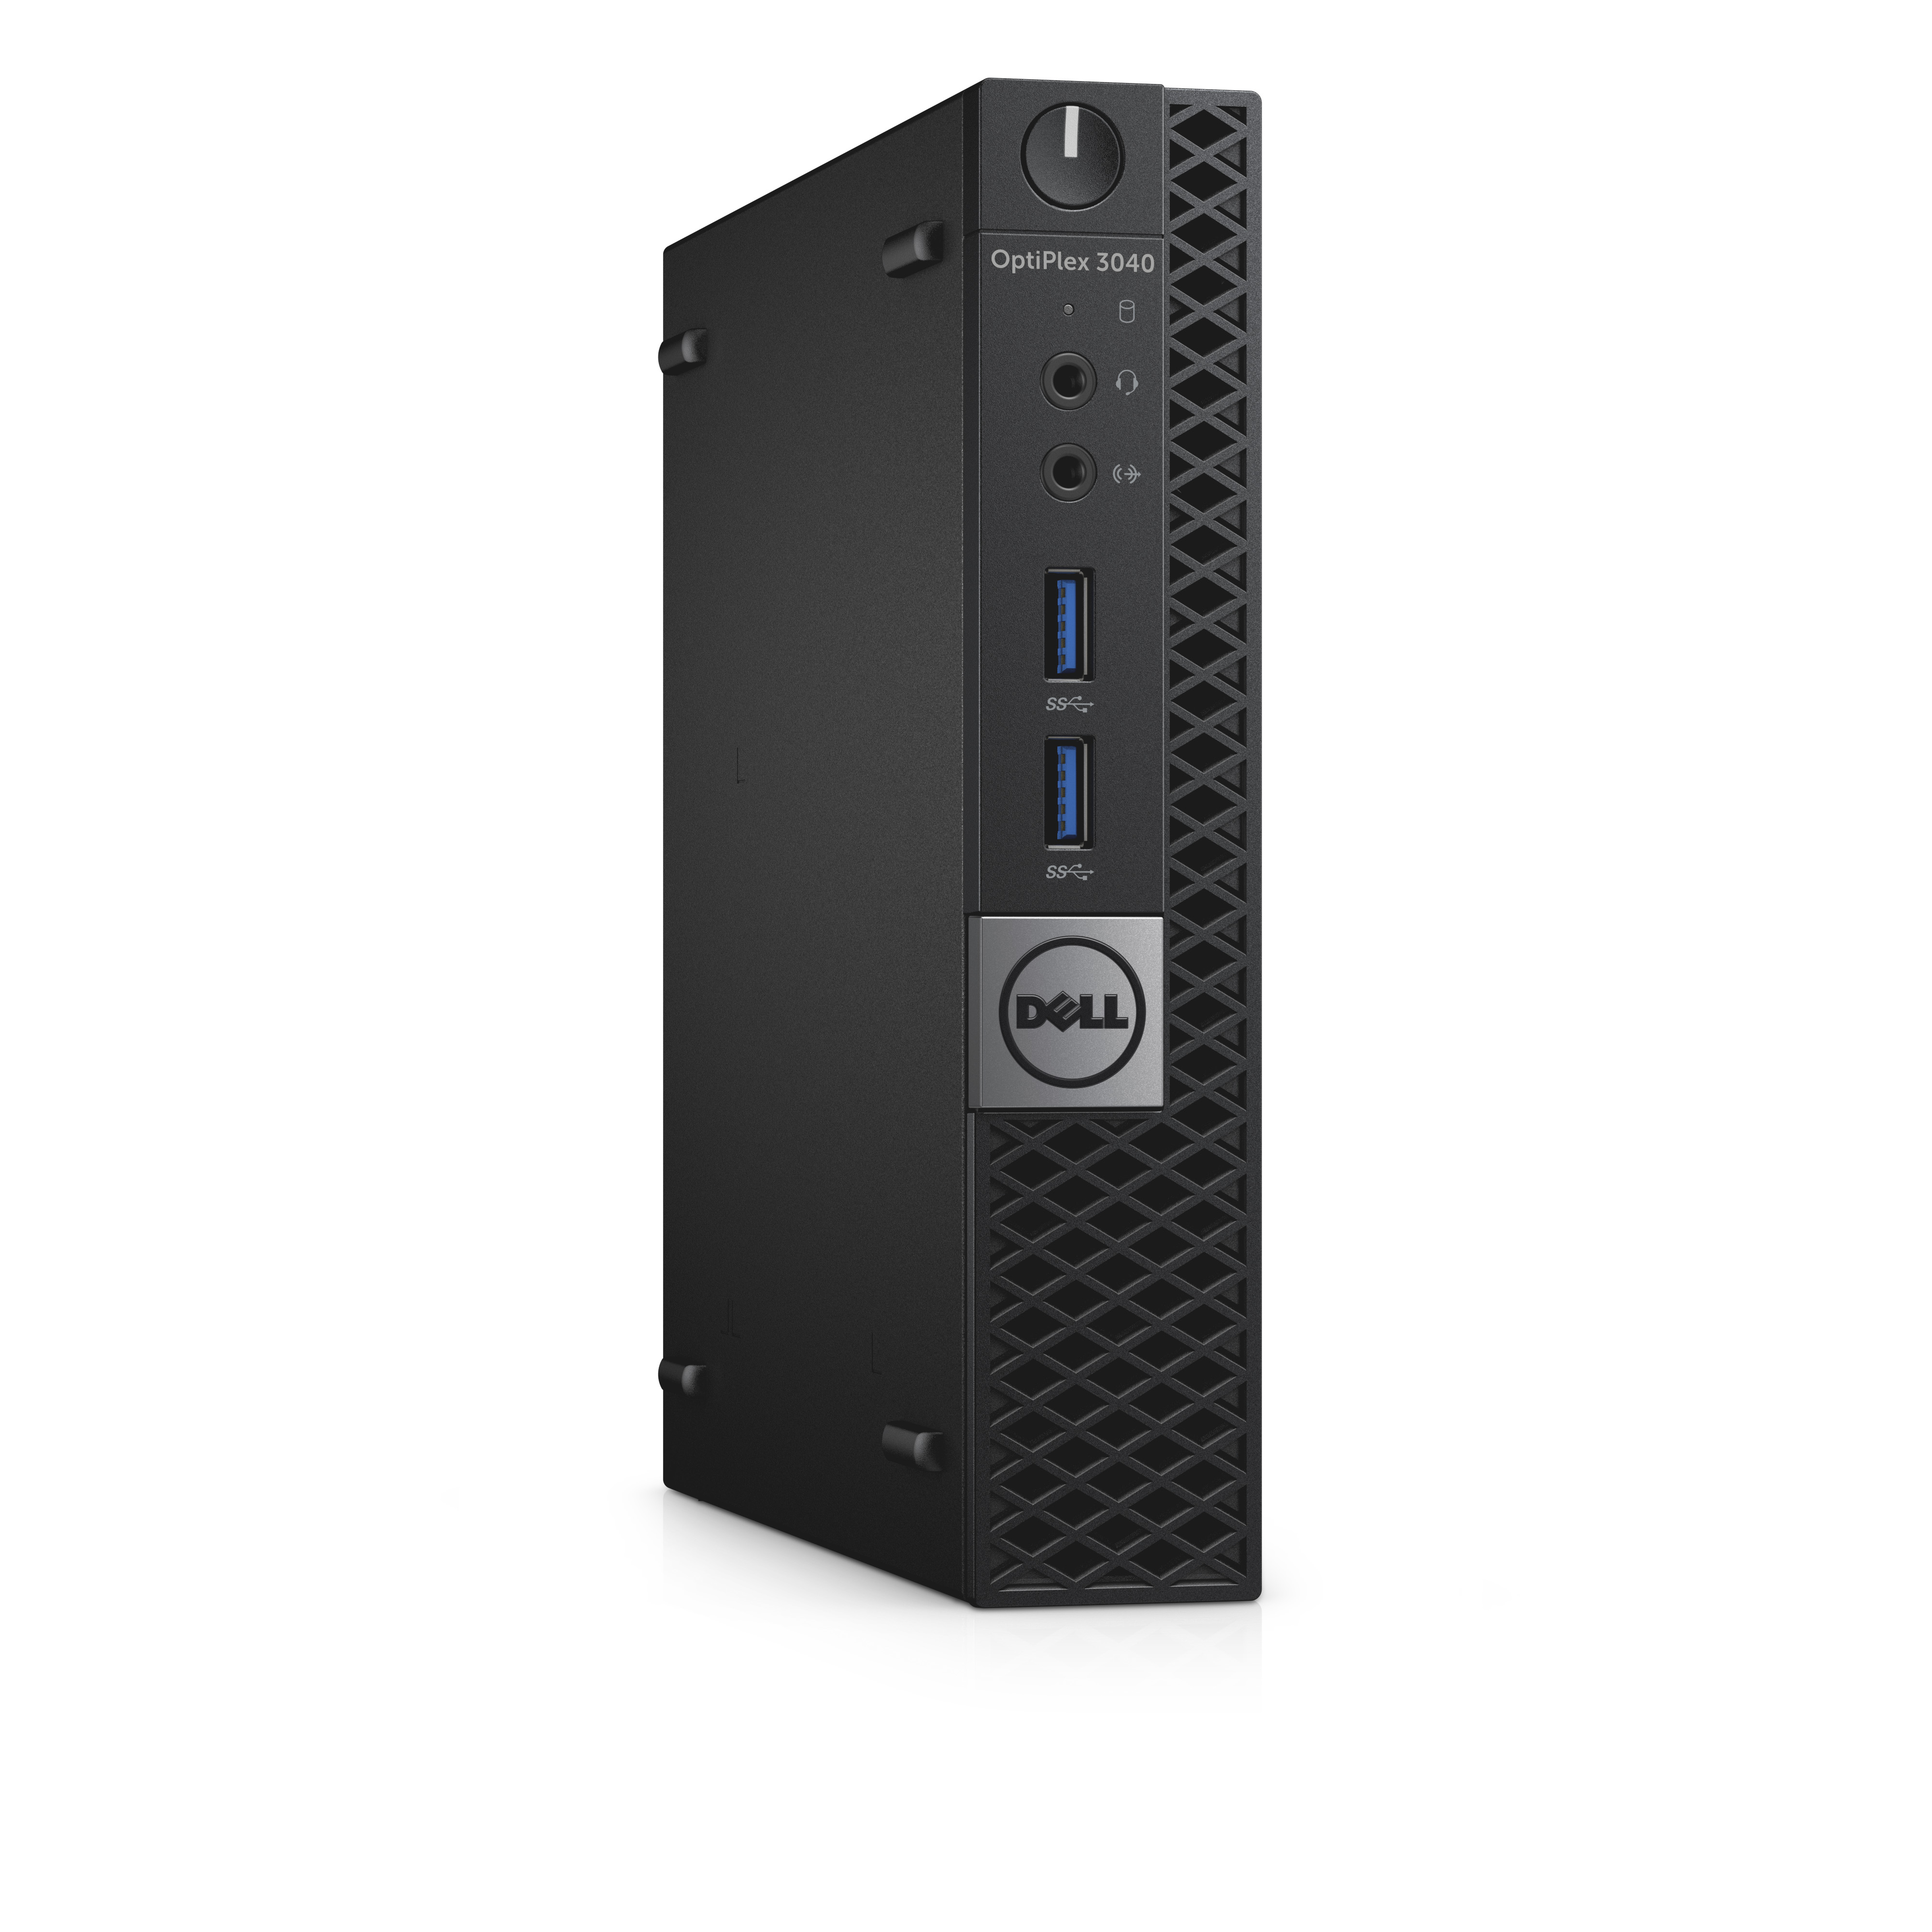 DELL OptiPlex SFF 3046 Pentium G4400/4GB/500GB/Intel HD/Win 10 Pro 64bit/3Yr NBD